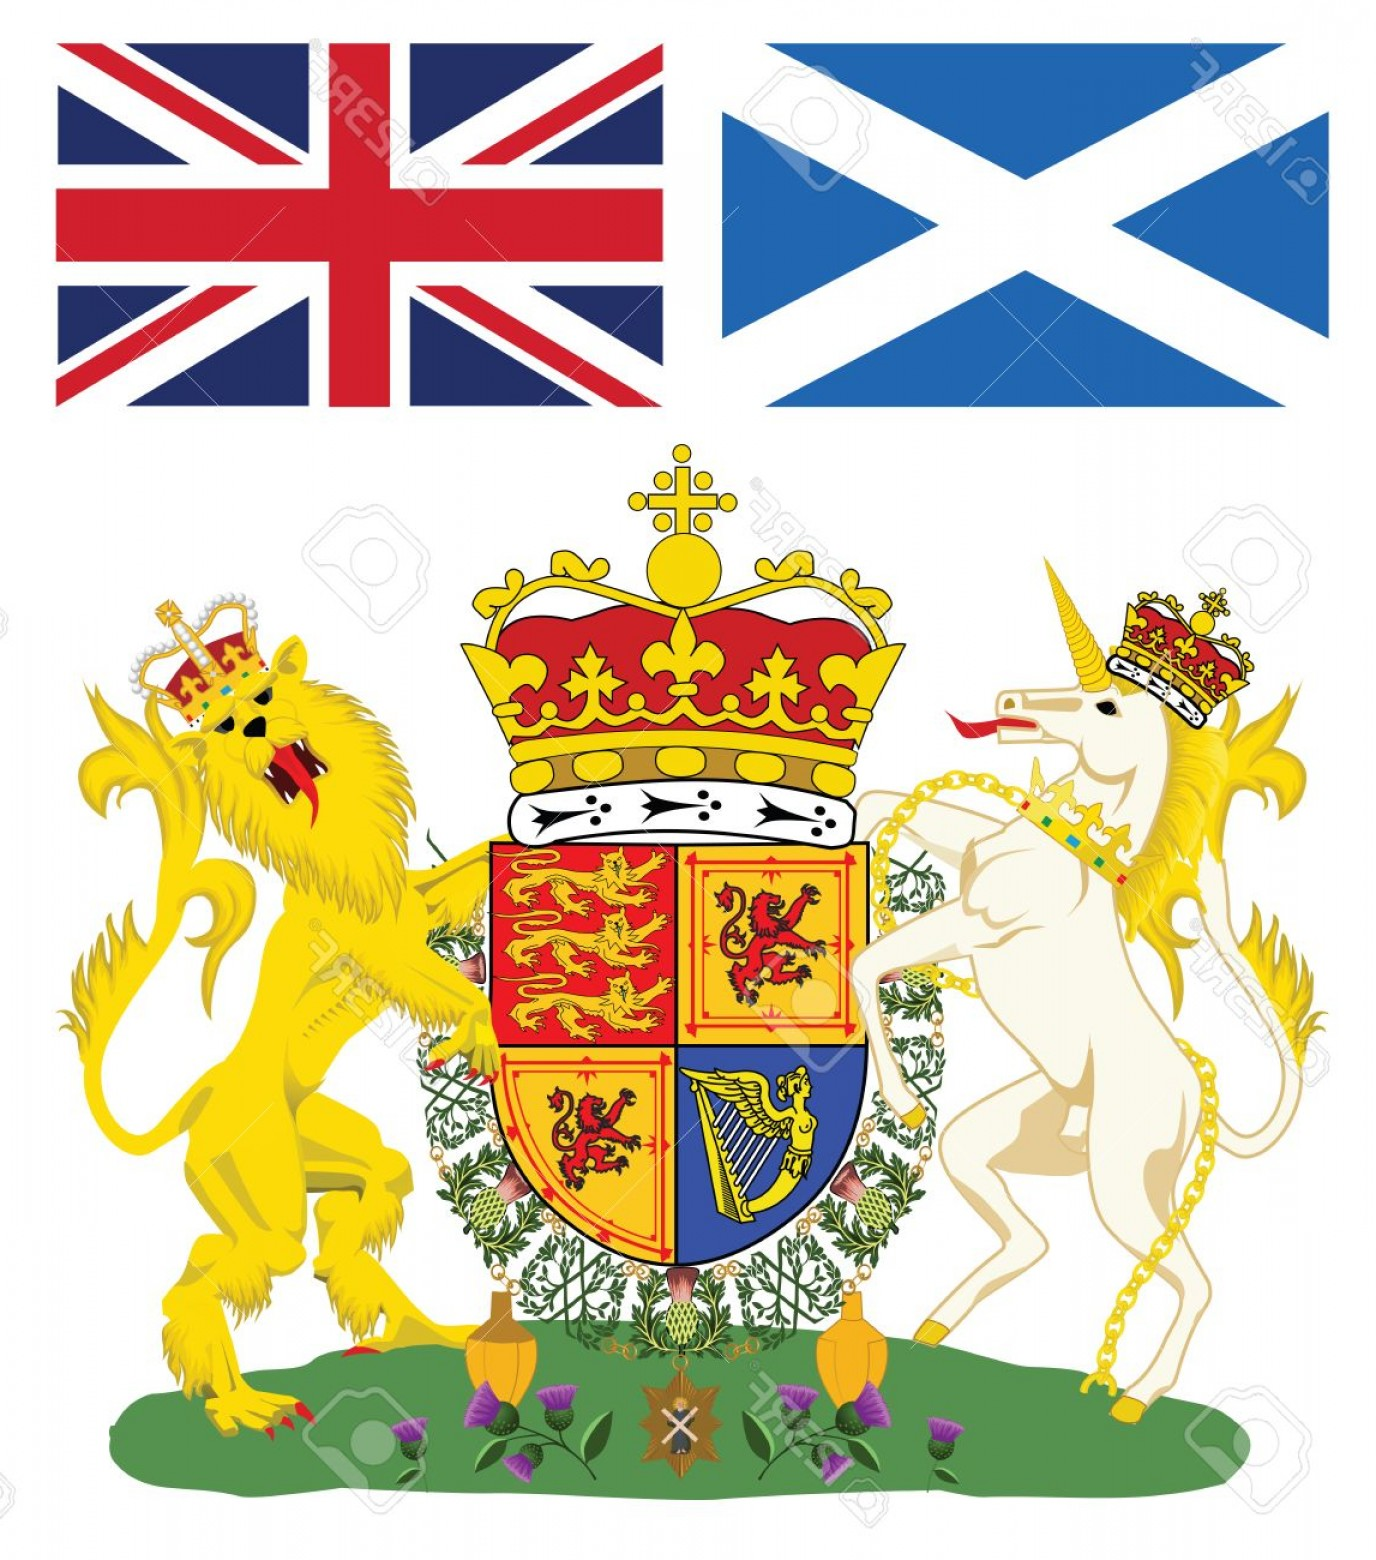 Scotland Heraldic Vector Graphic: Photoscottish Royal Coat Of Arms With Flags Of Scotland And Great Britain